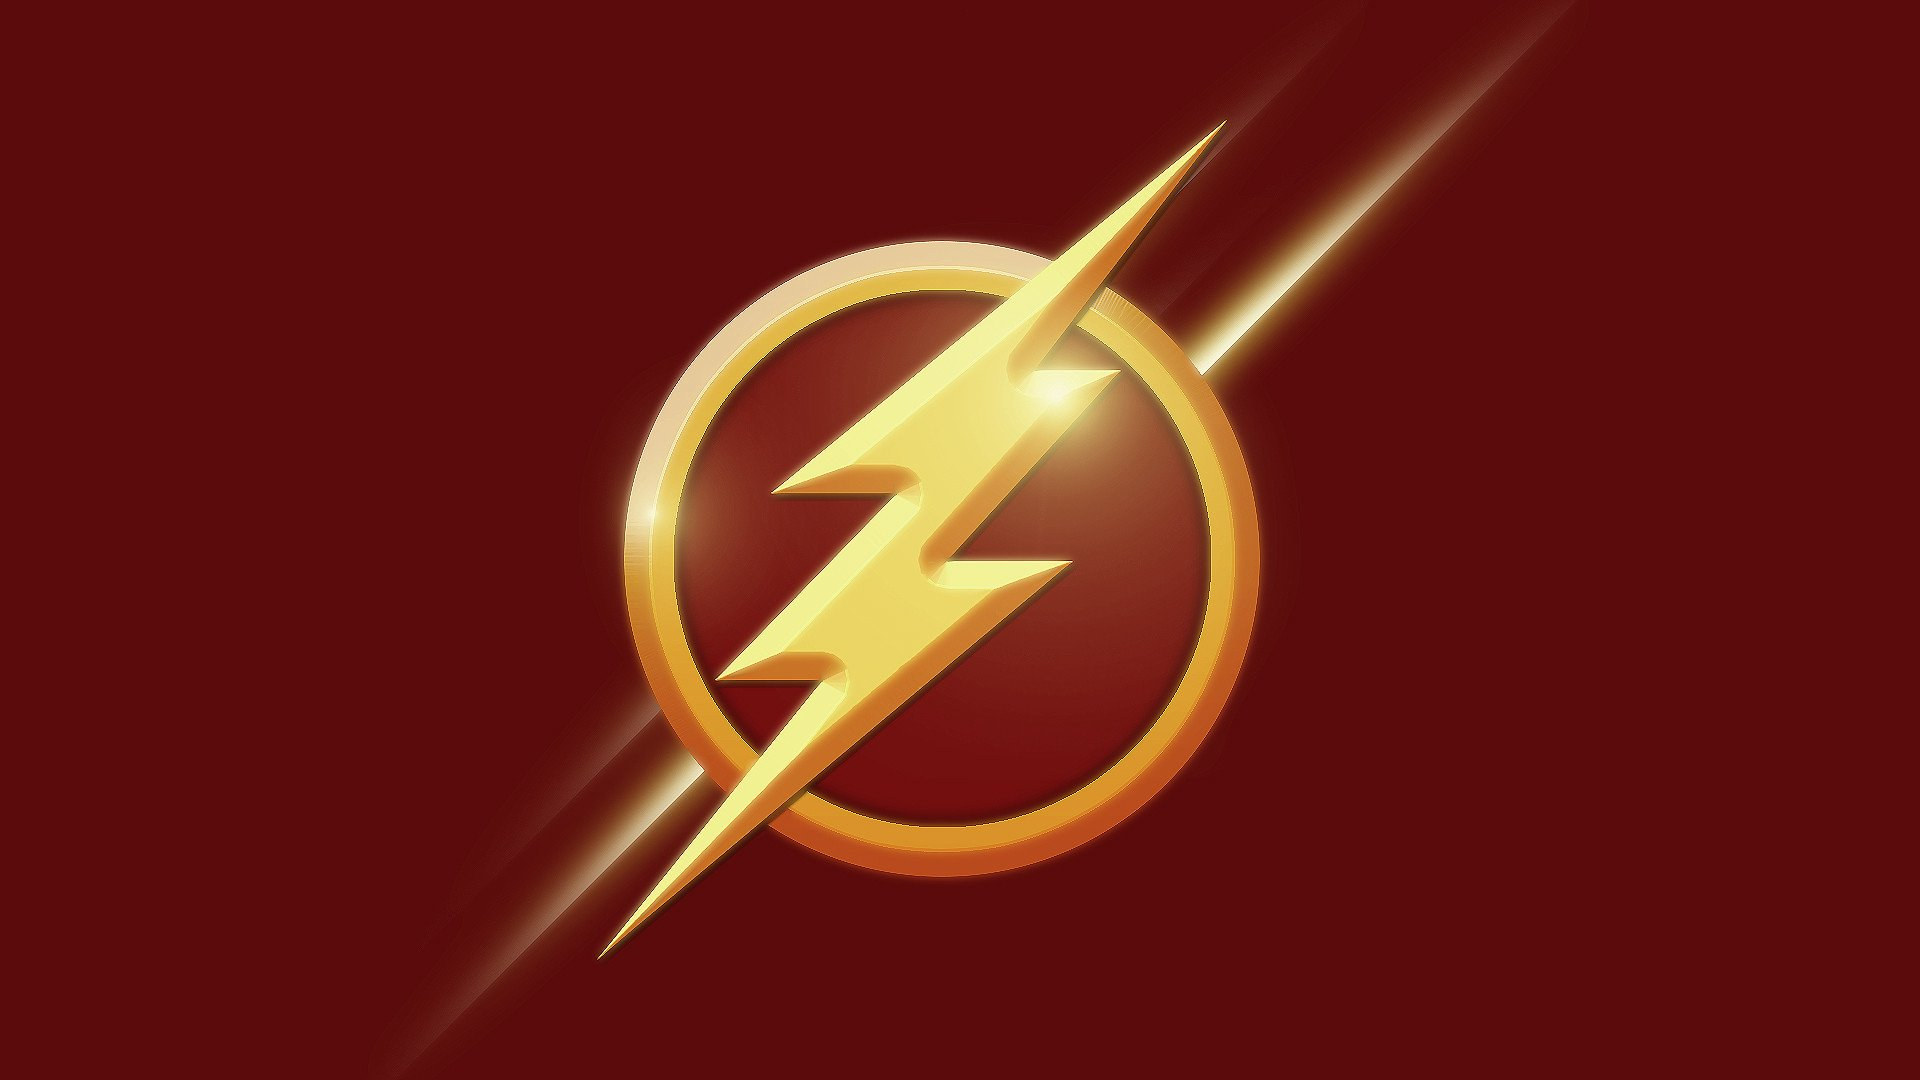 Images the flash wallpaper 1920x1080